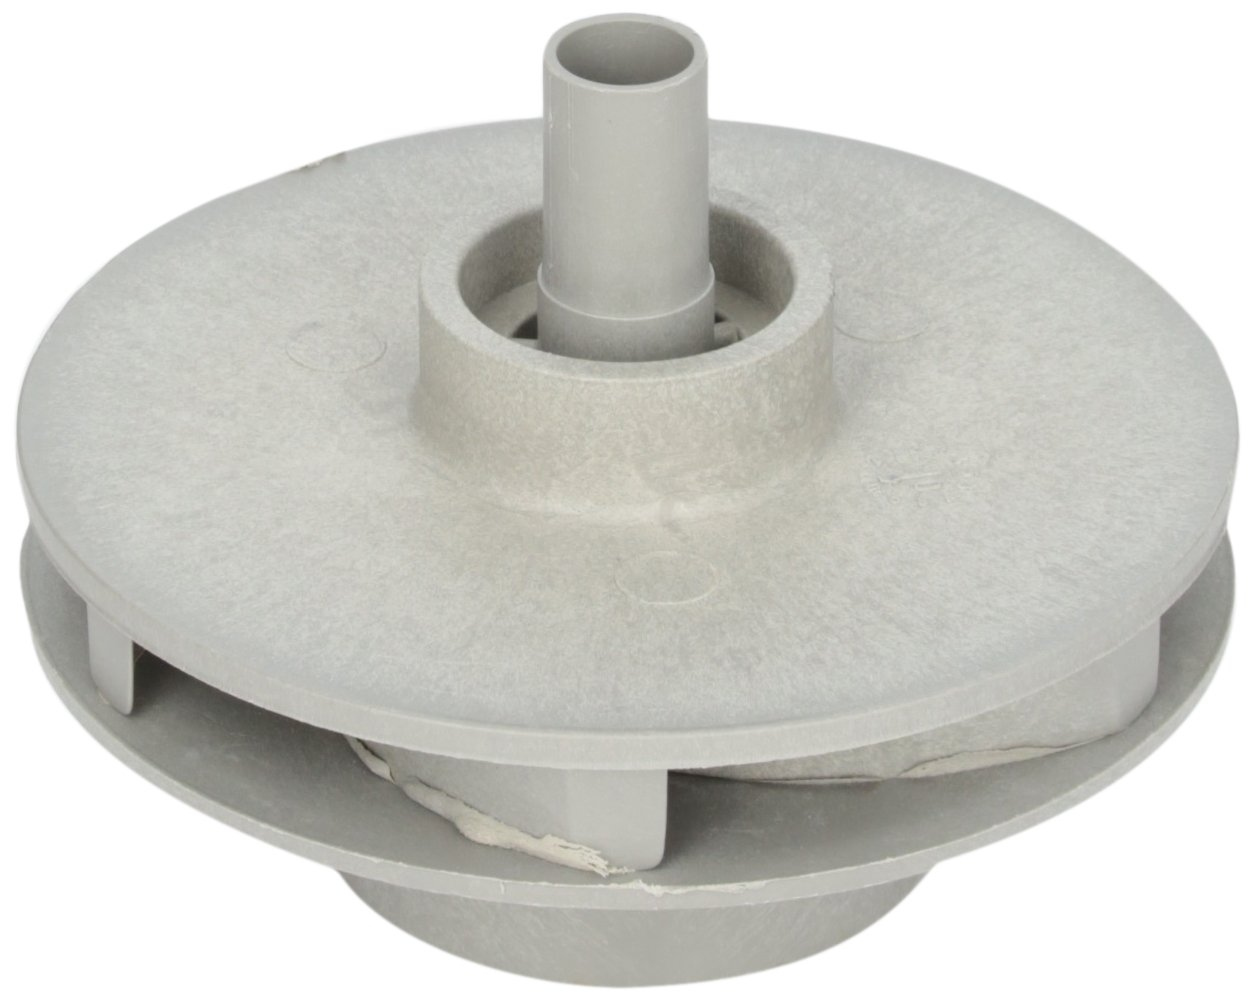 Waterway 310-4180B Impeller Assembly Replacement for Waterway 56-Frame Executive Series 5-Horsepower Pool and Spa Pump by Waterway (Image #1)